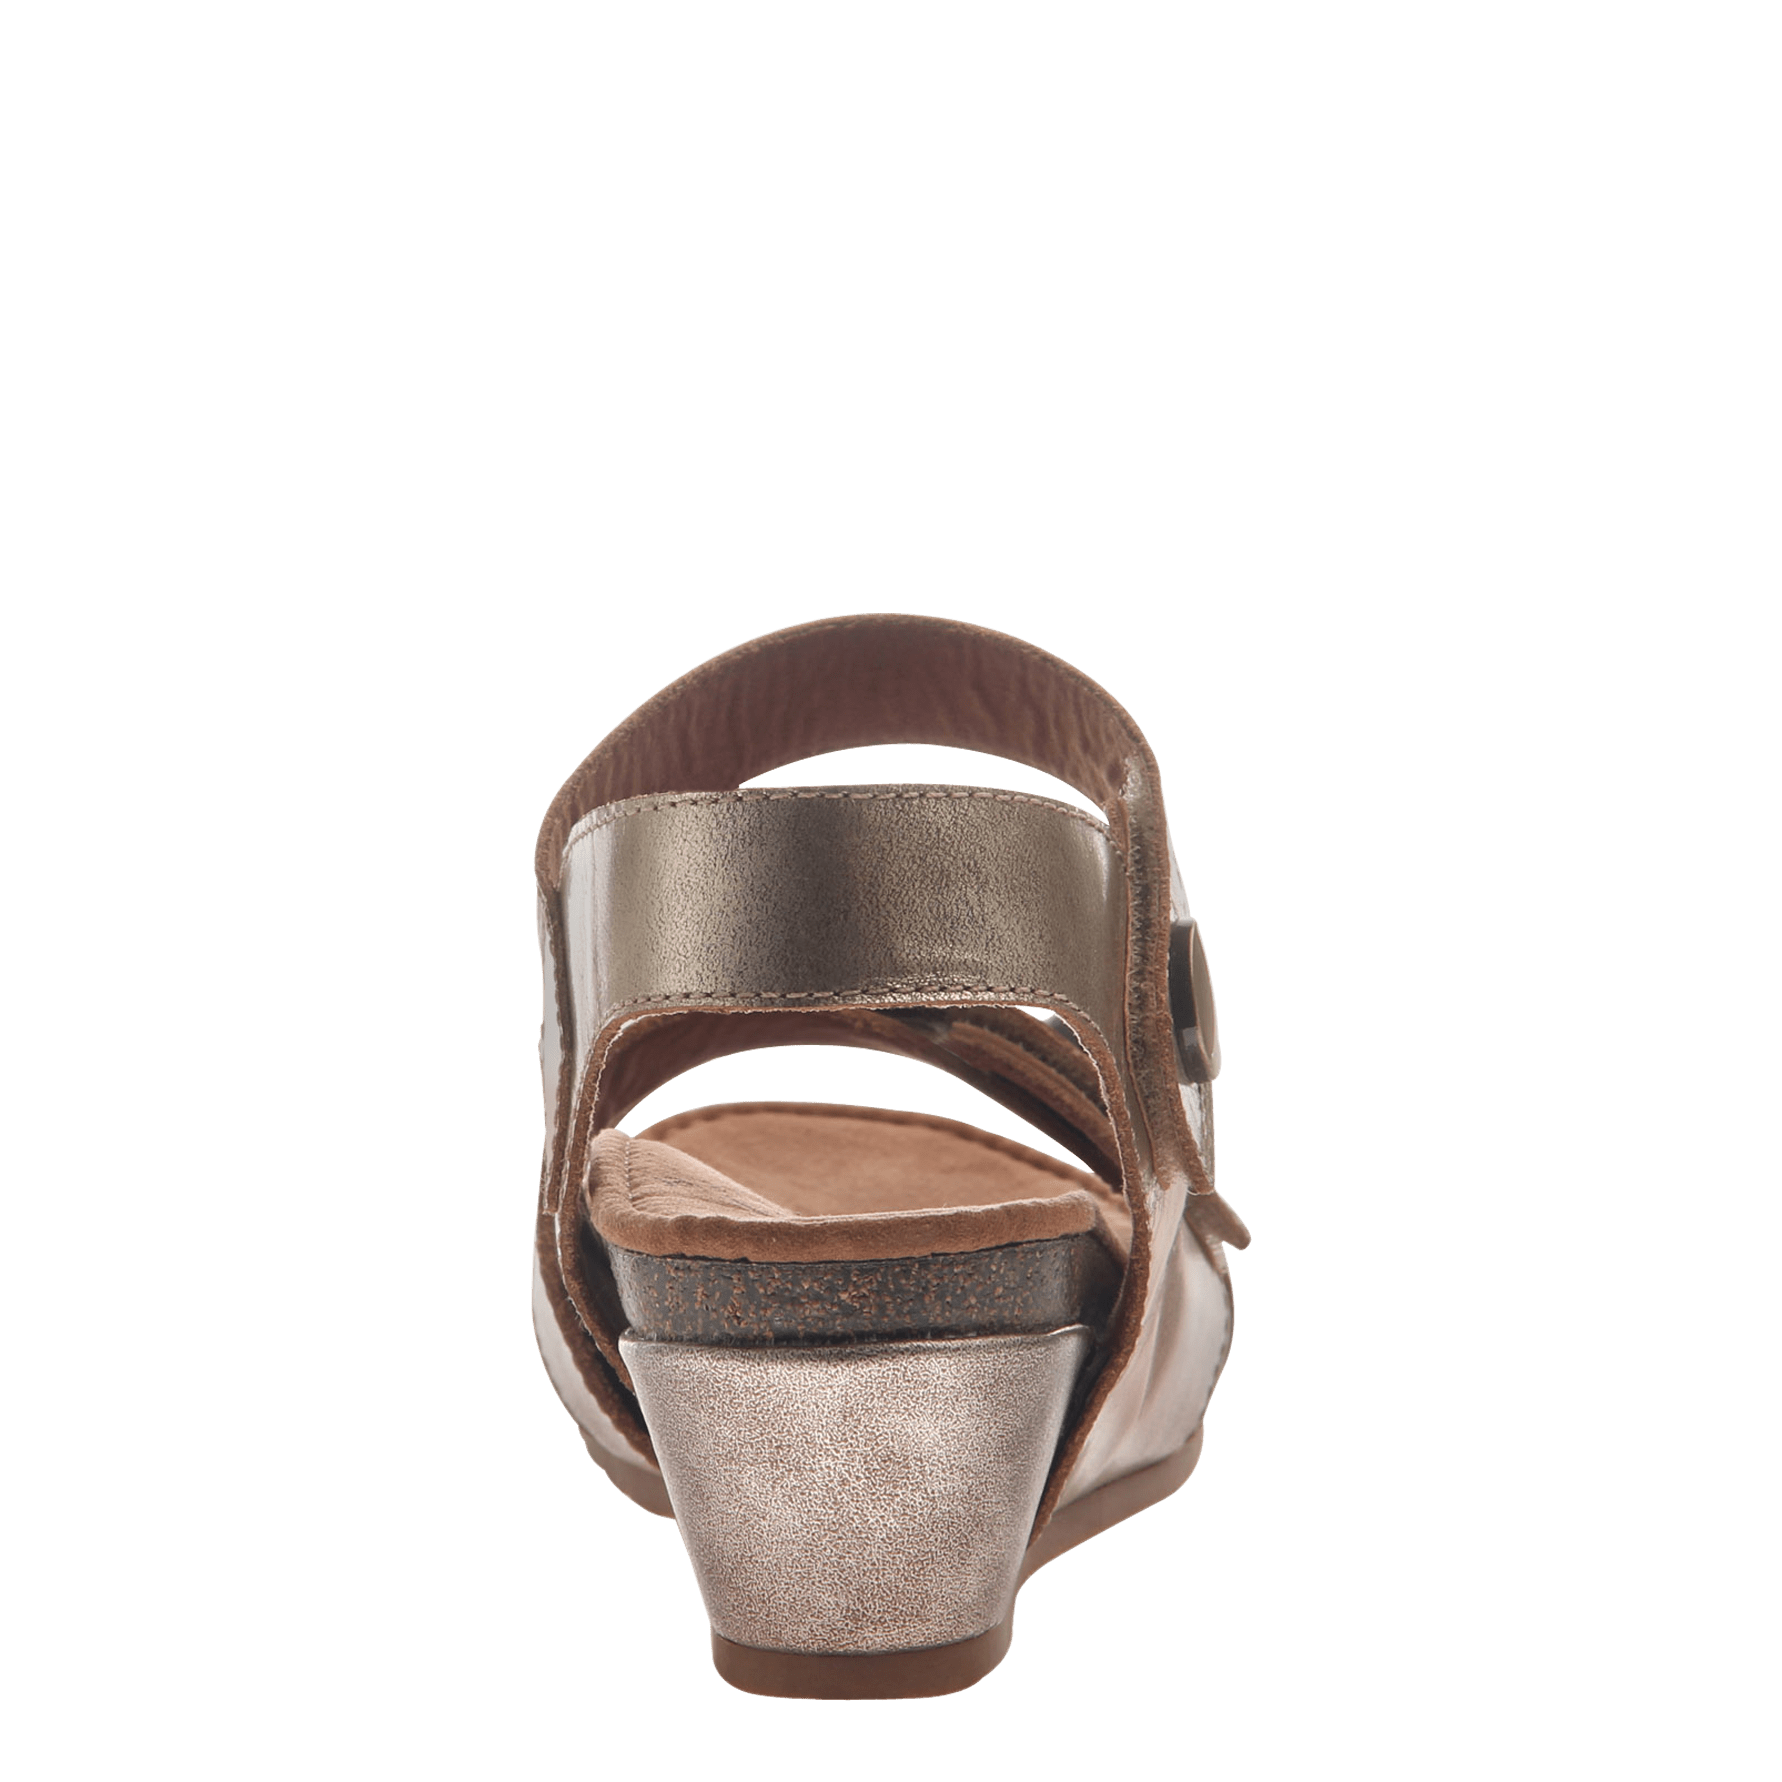 d7033815254b Womens wedge sandal Sandey in Gold back view